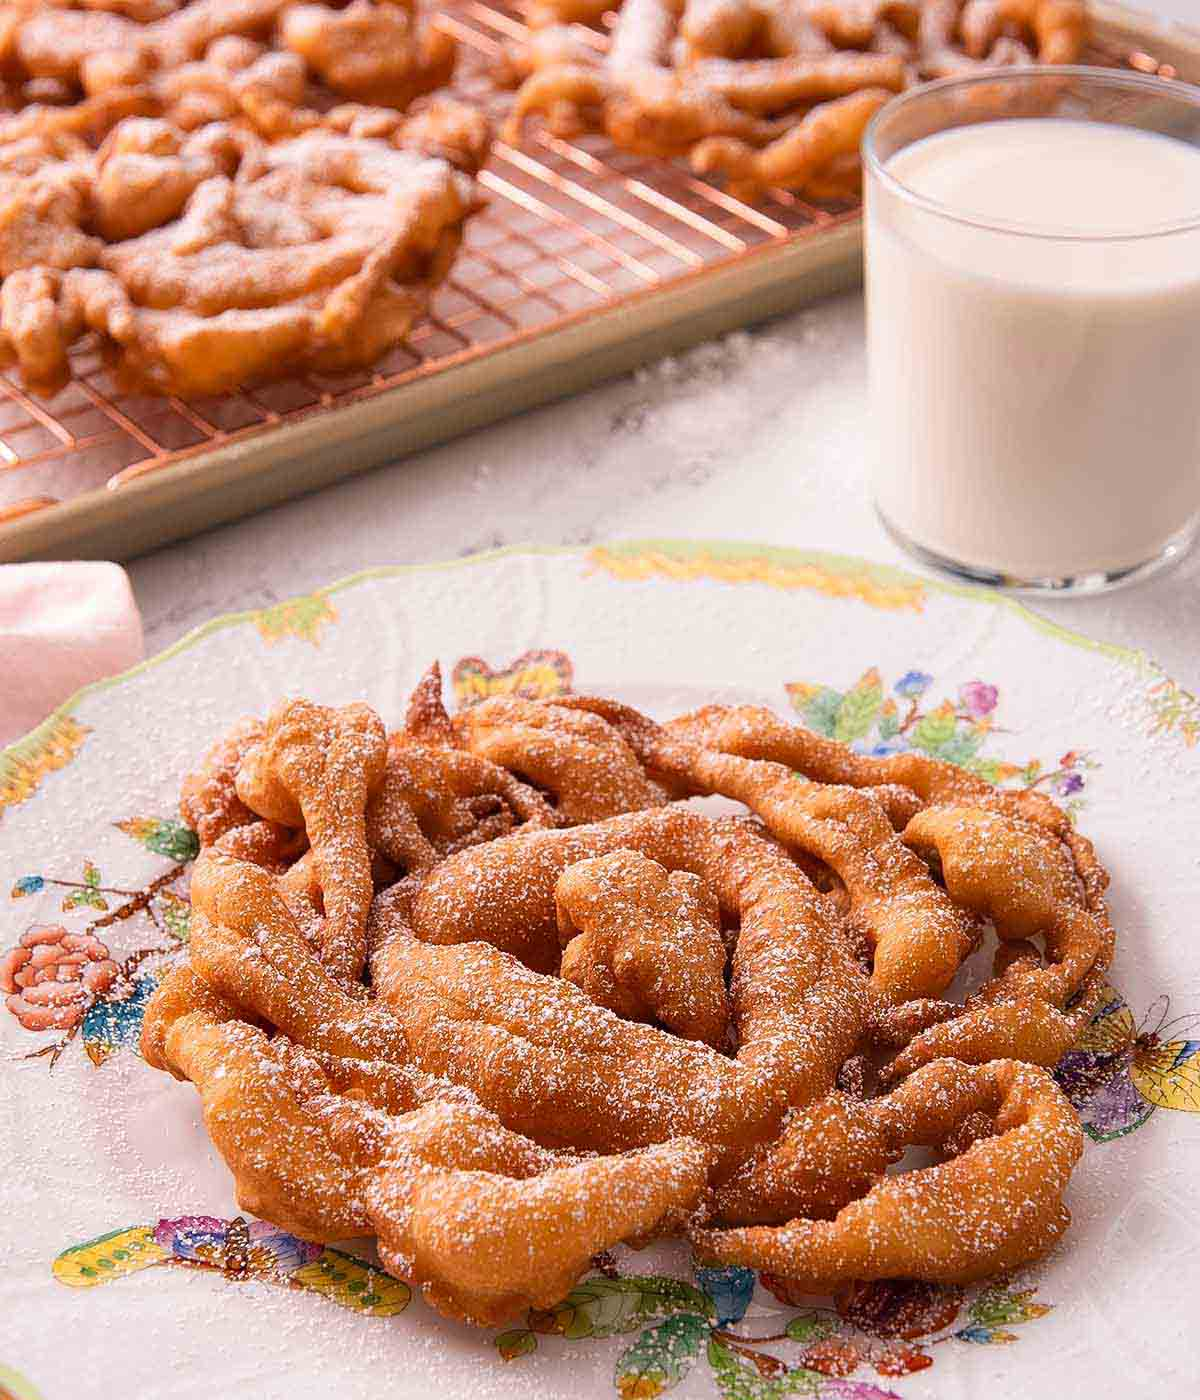 A round funnel cake with a fine dusting of powdered sugar with a glass of milk in the background and more funnel cakes on a cooling rack.